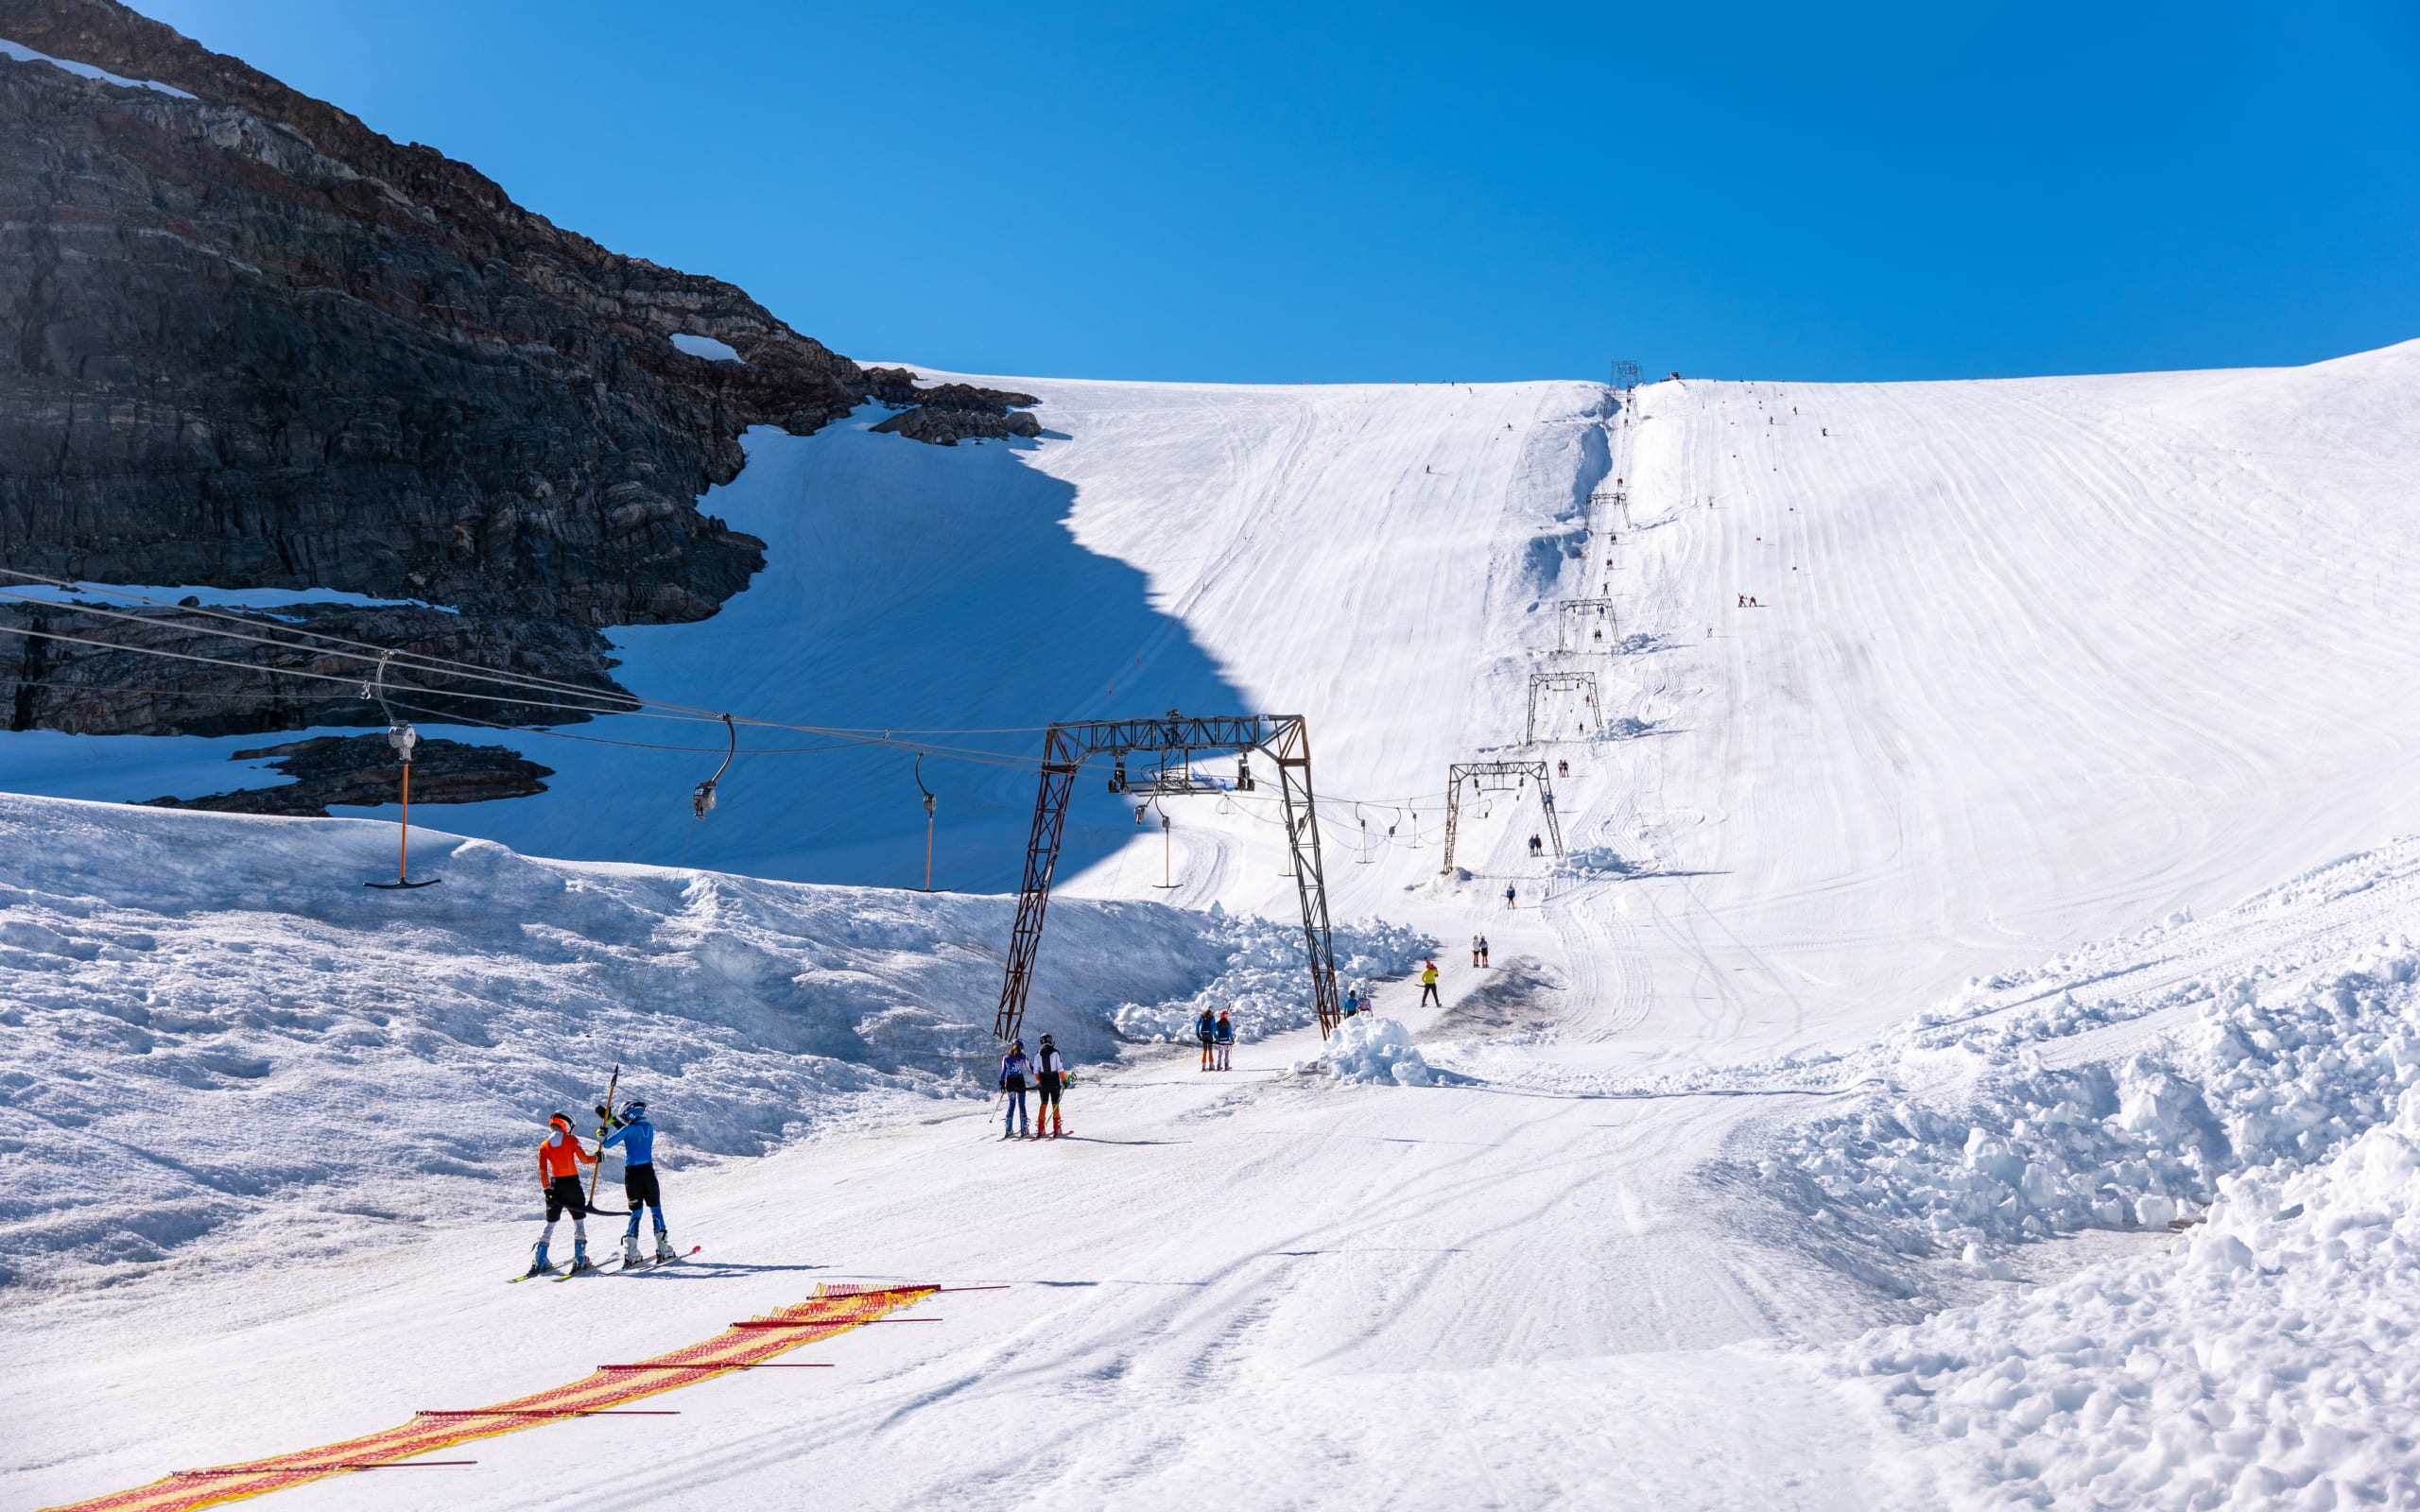 Summer skiing at Folgefonna